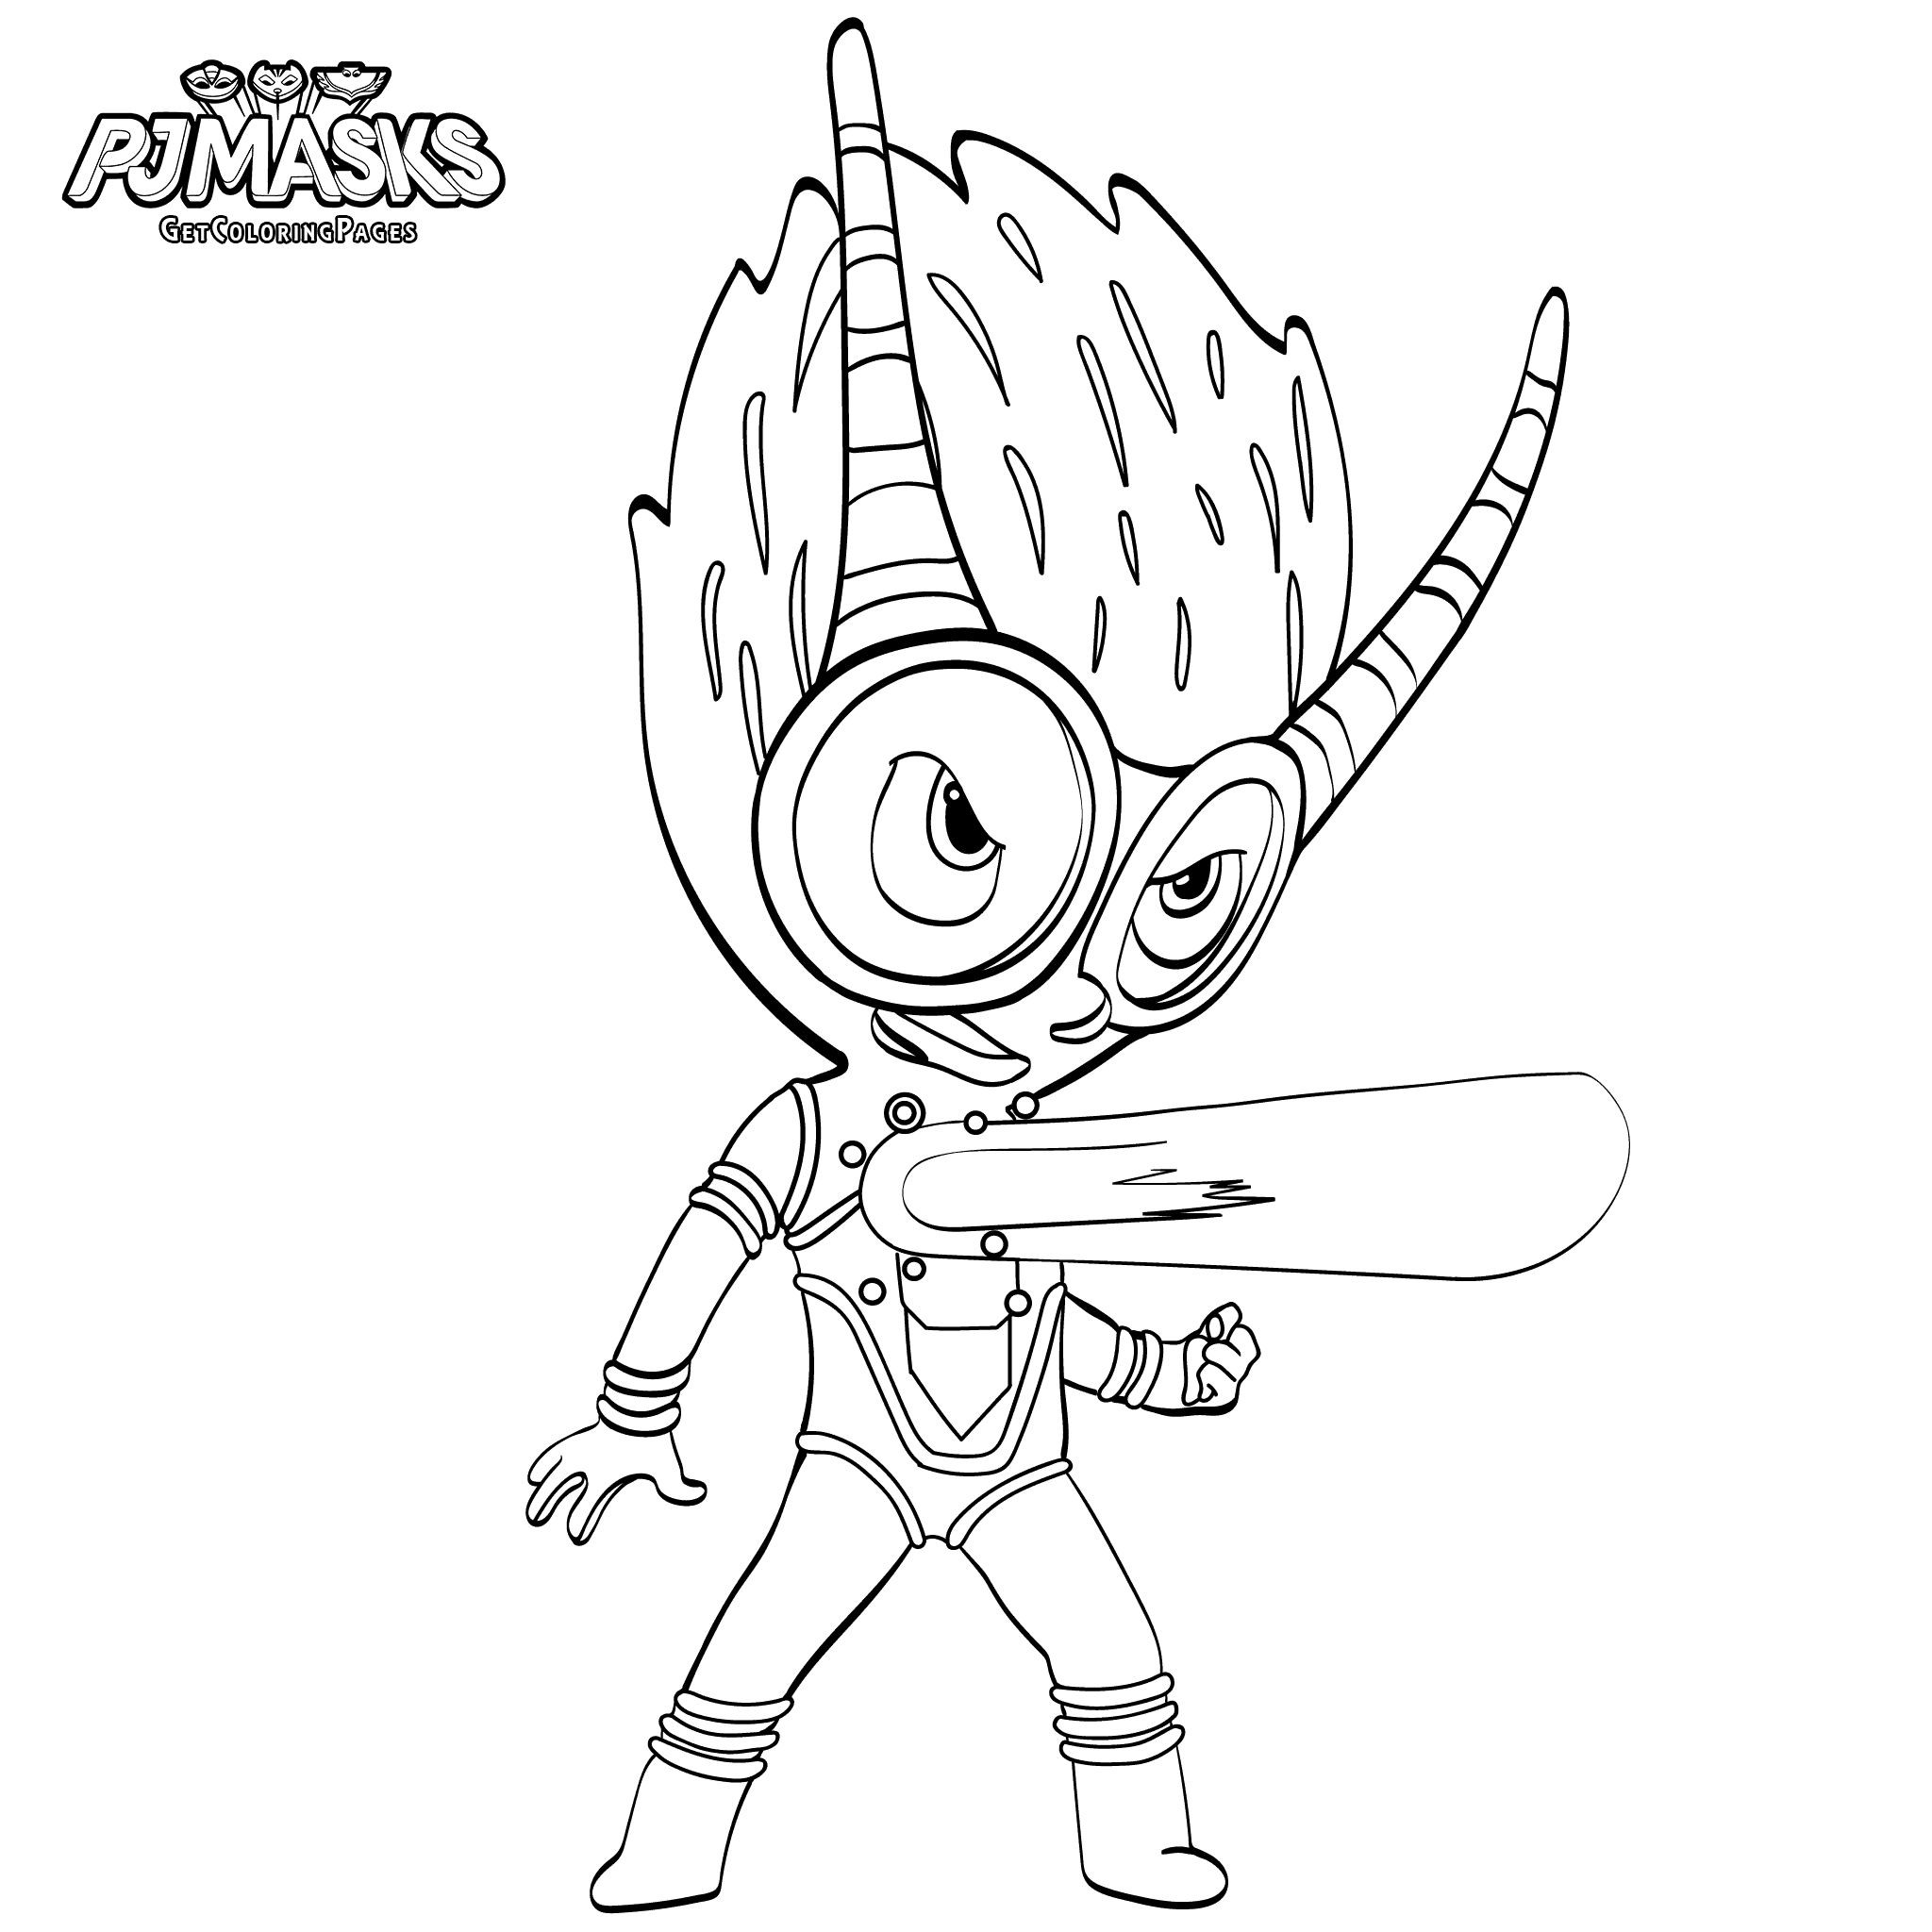 2048x2048 Pj Mask Coloring Pages Elegant Coloring Pages Pj Masks Free Free